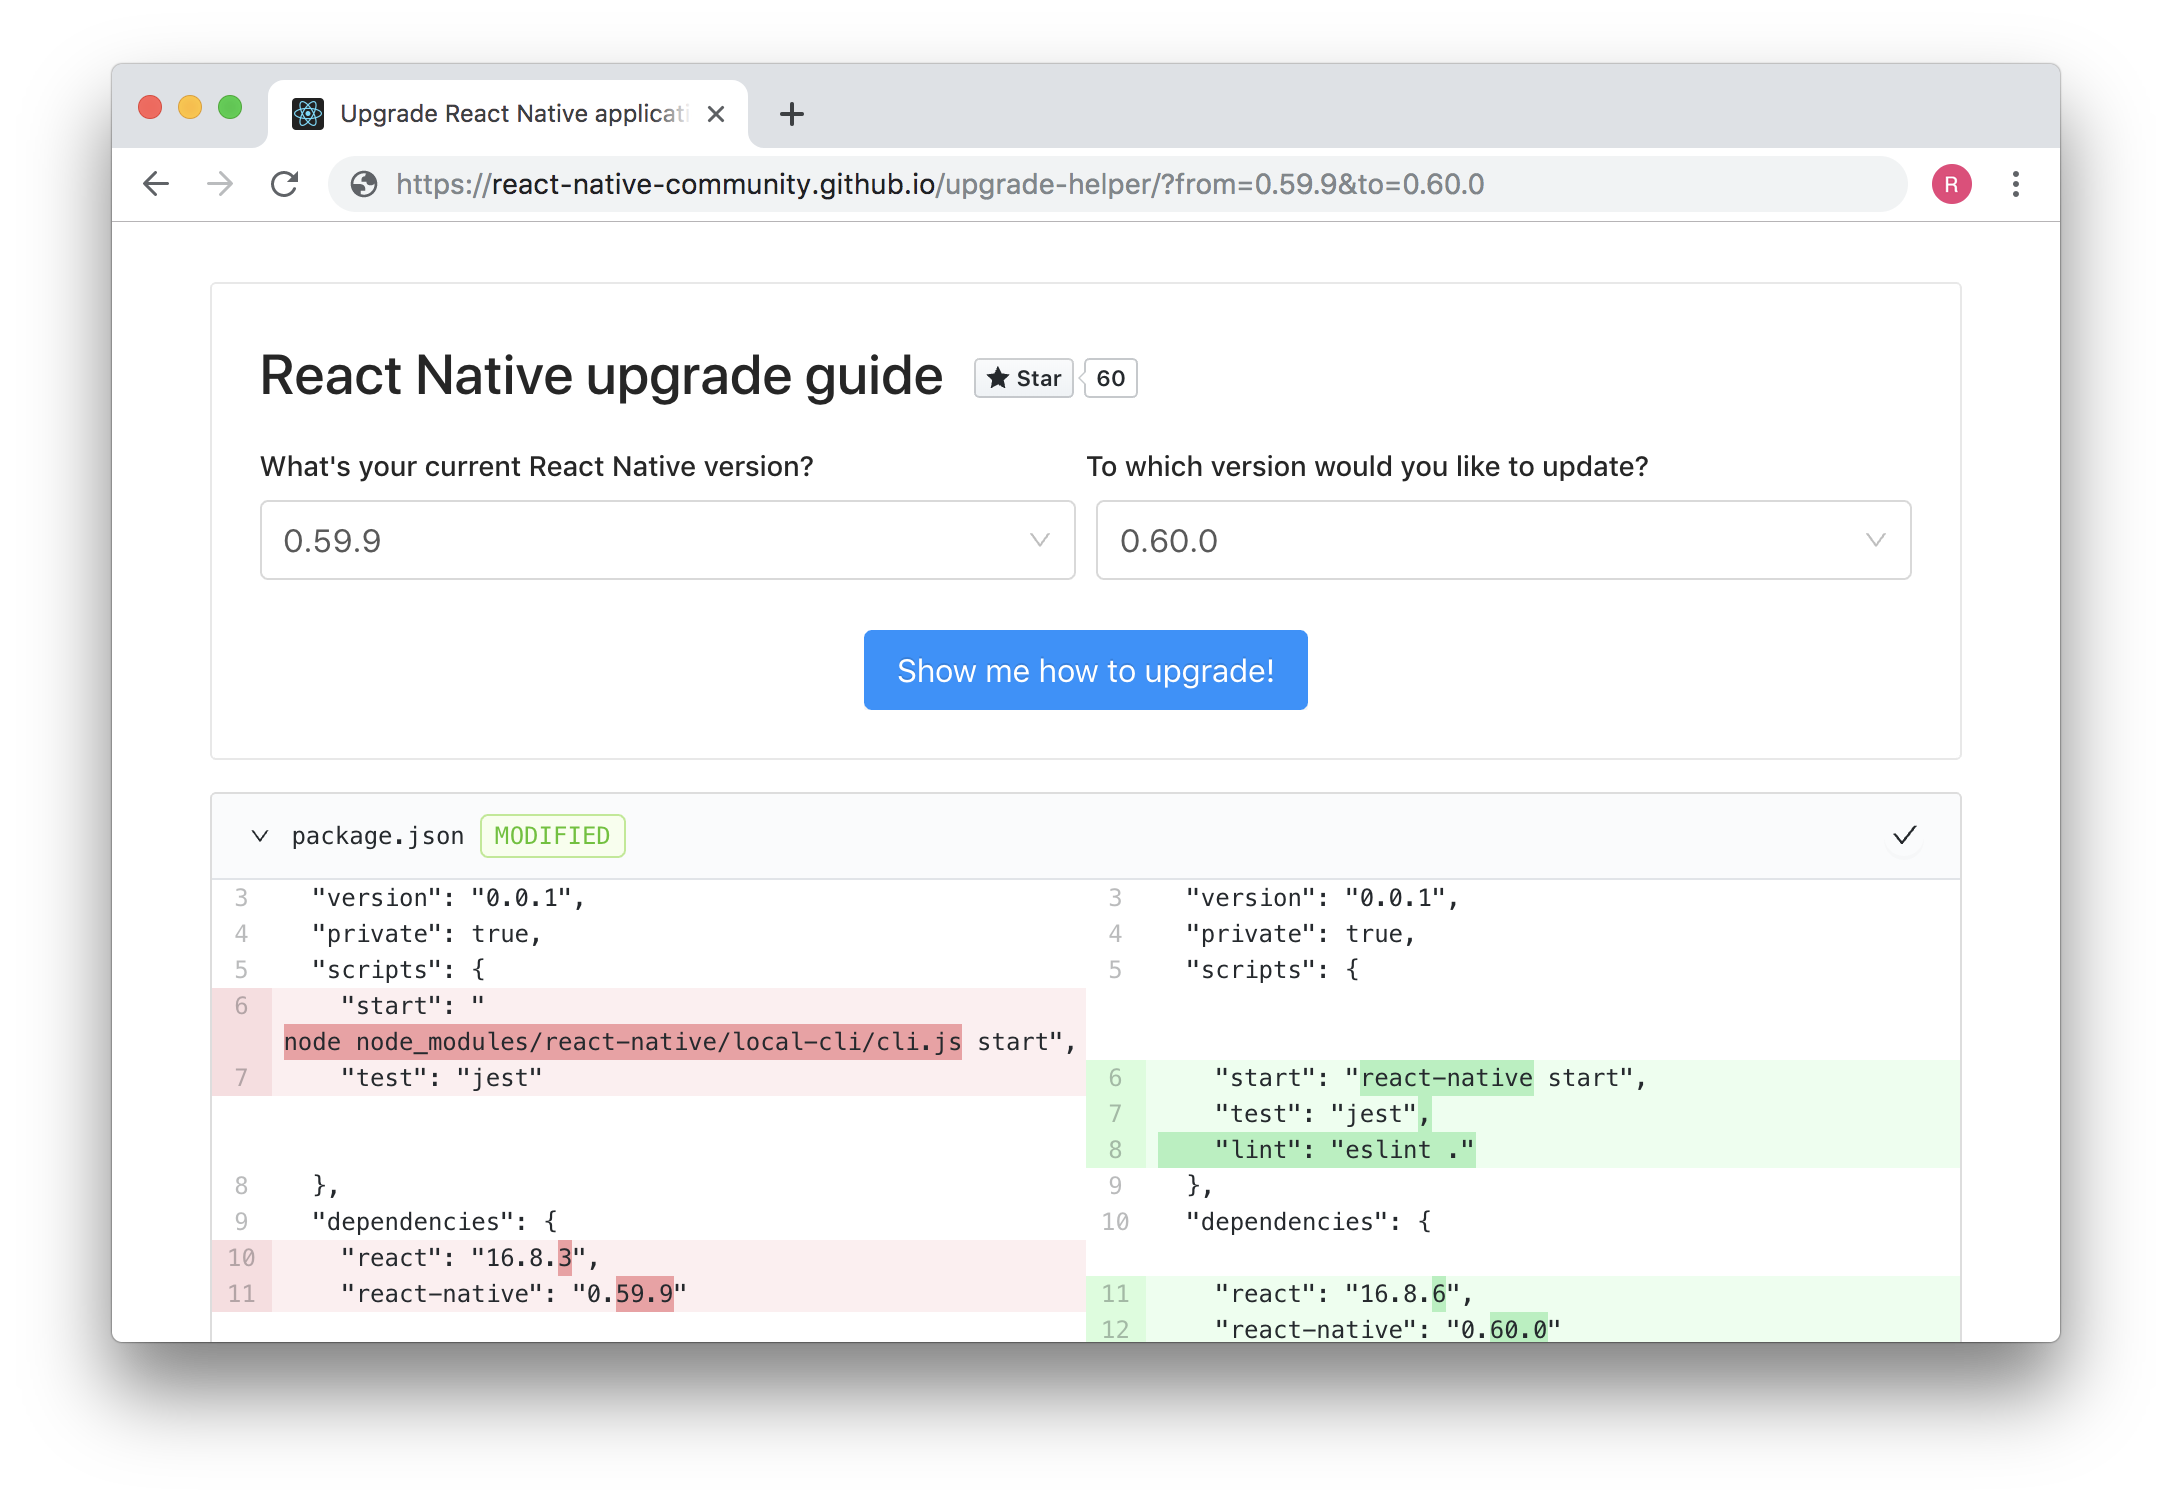 Upgrade Helper cleanly and easily shows the changes needed to migrate to a different version of React Native